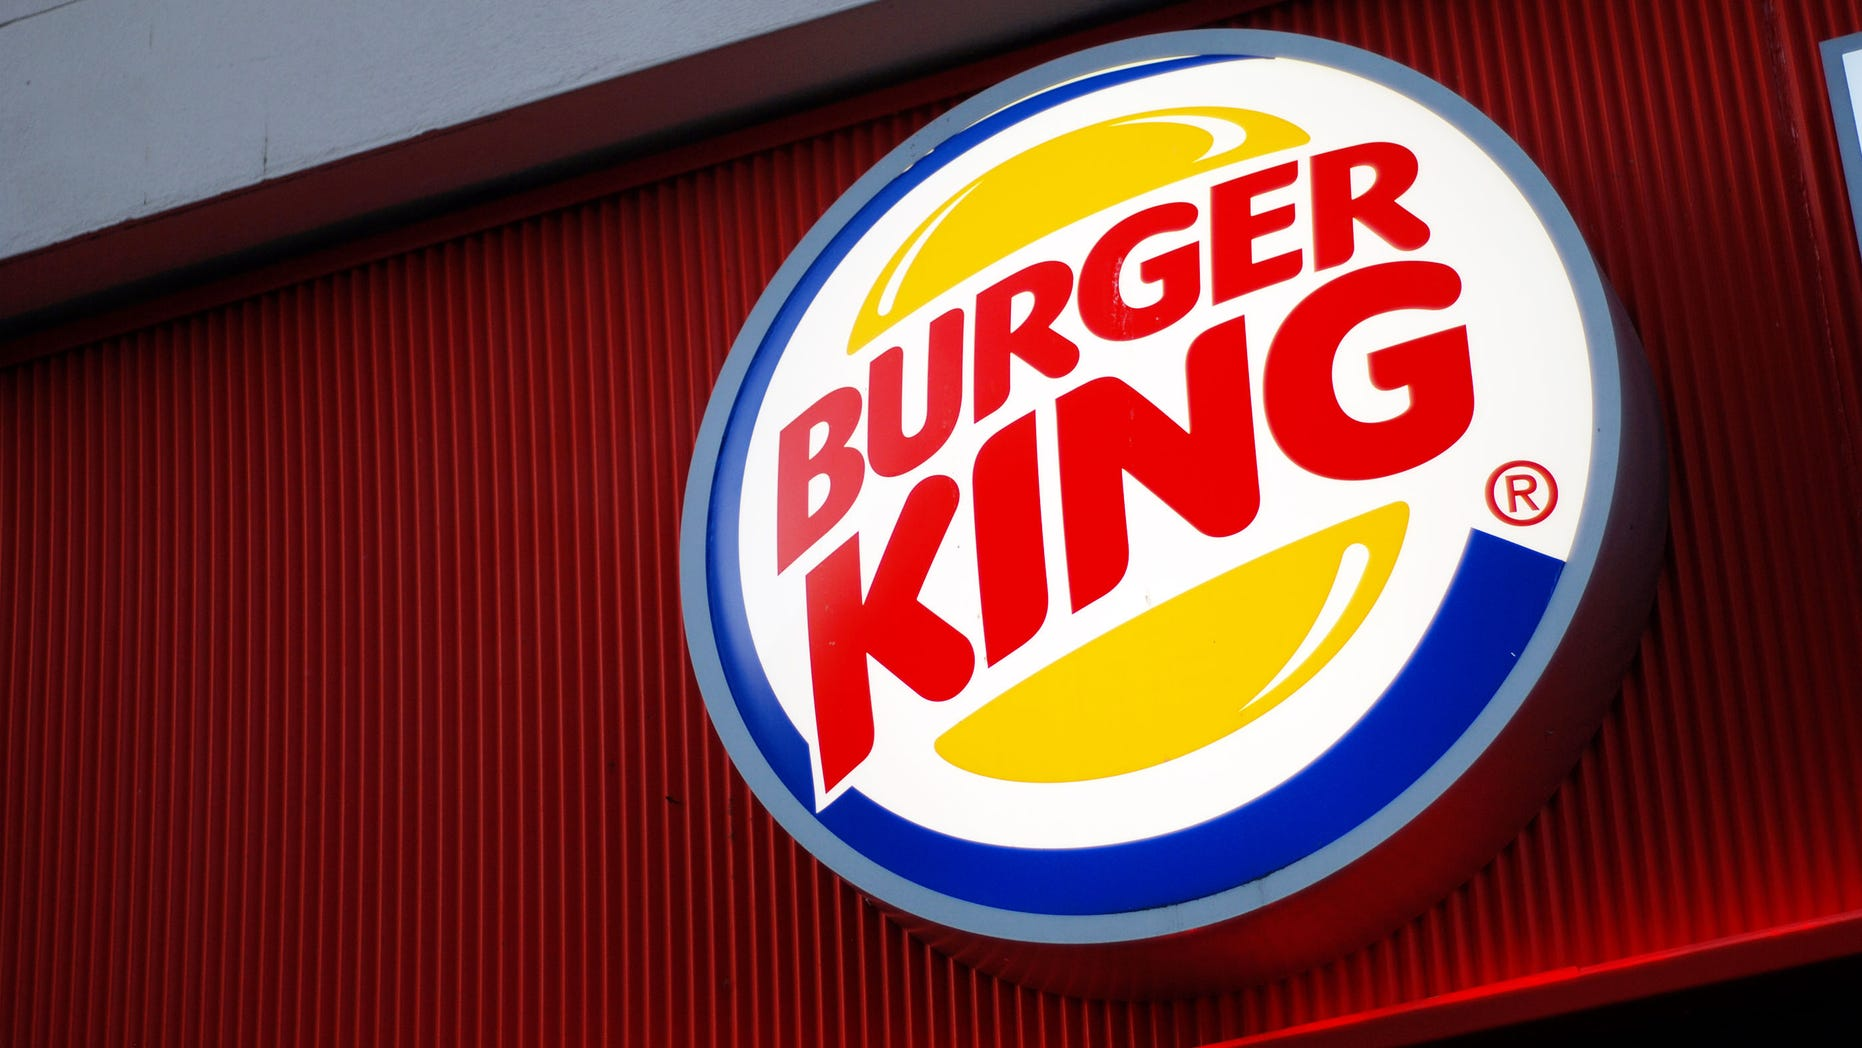 Westlake Legal Group Burger-King-top-of-page Burger King to give Bronx residents free Whoppers for dealing with 'Joker Stairs' tourists New York Post Hannah Sparks fox-news/food-drink/food/fast-food fnc/food-drink fnc c0c26e35-cbfa-5d51-8d41-263d24d68fd6 article